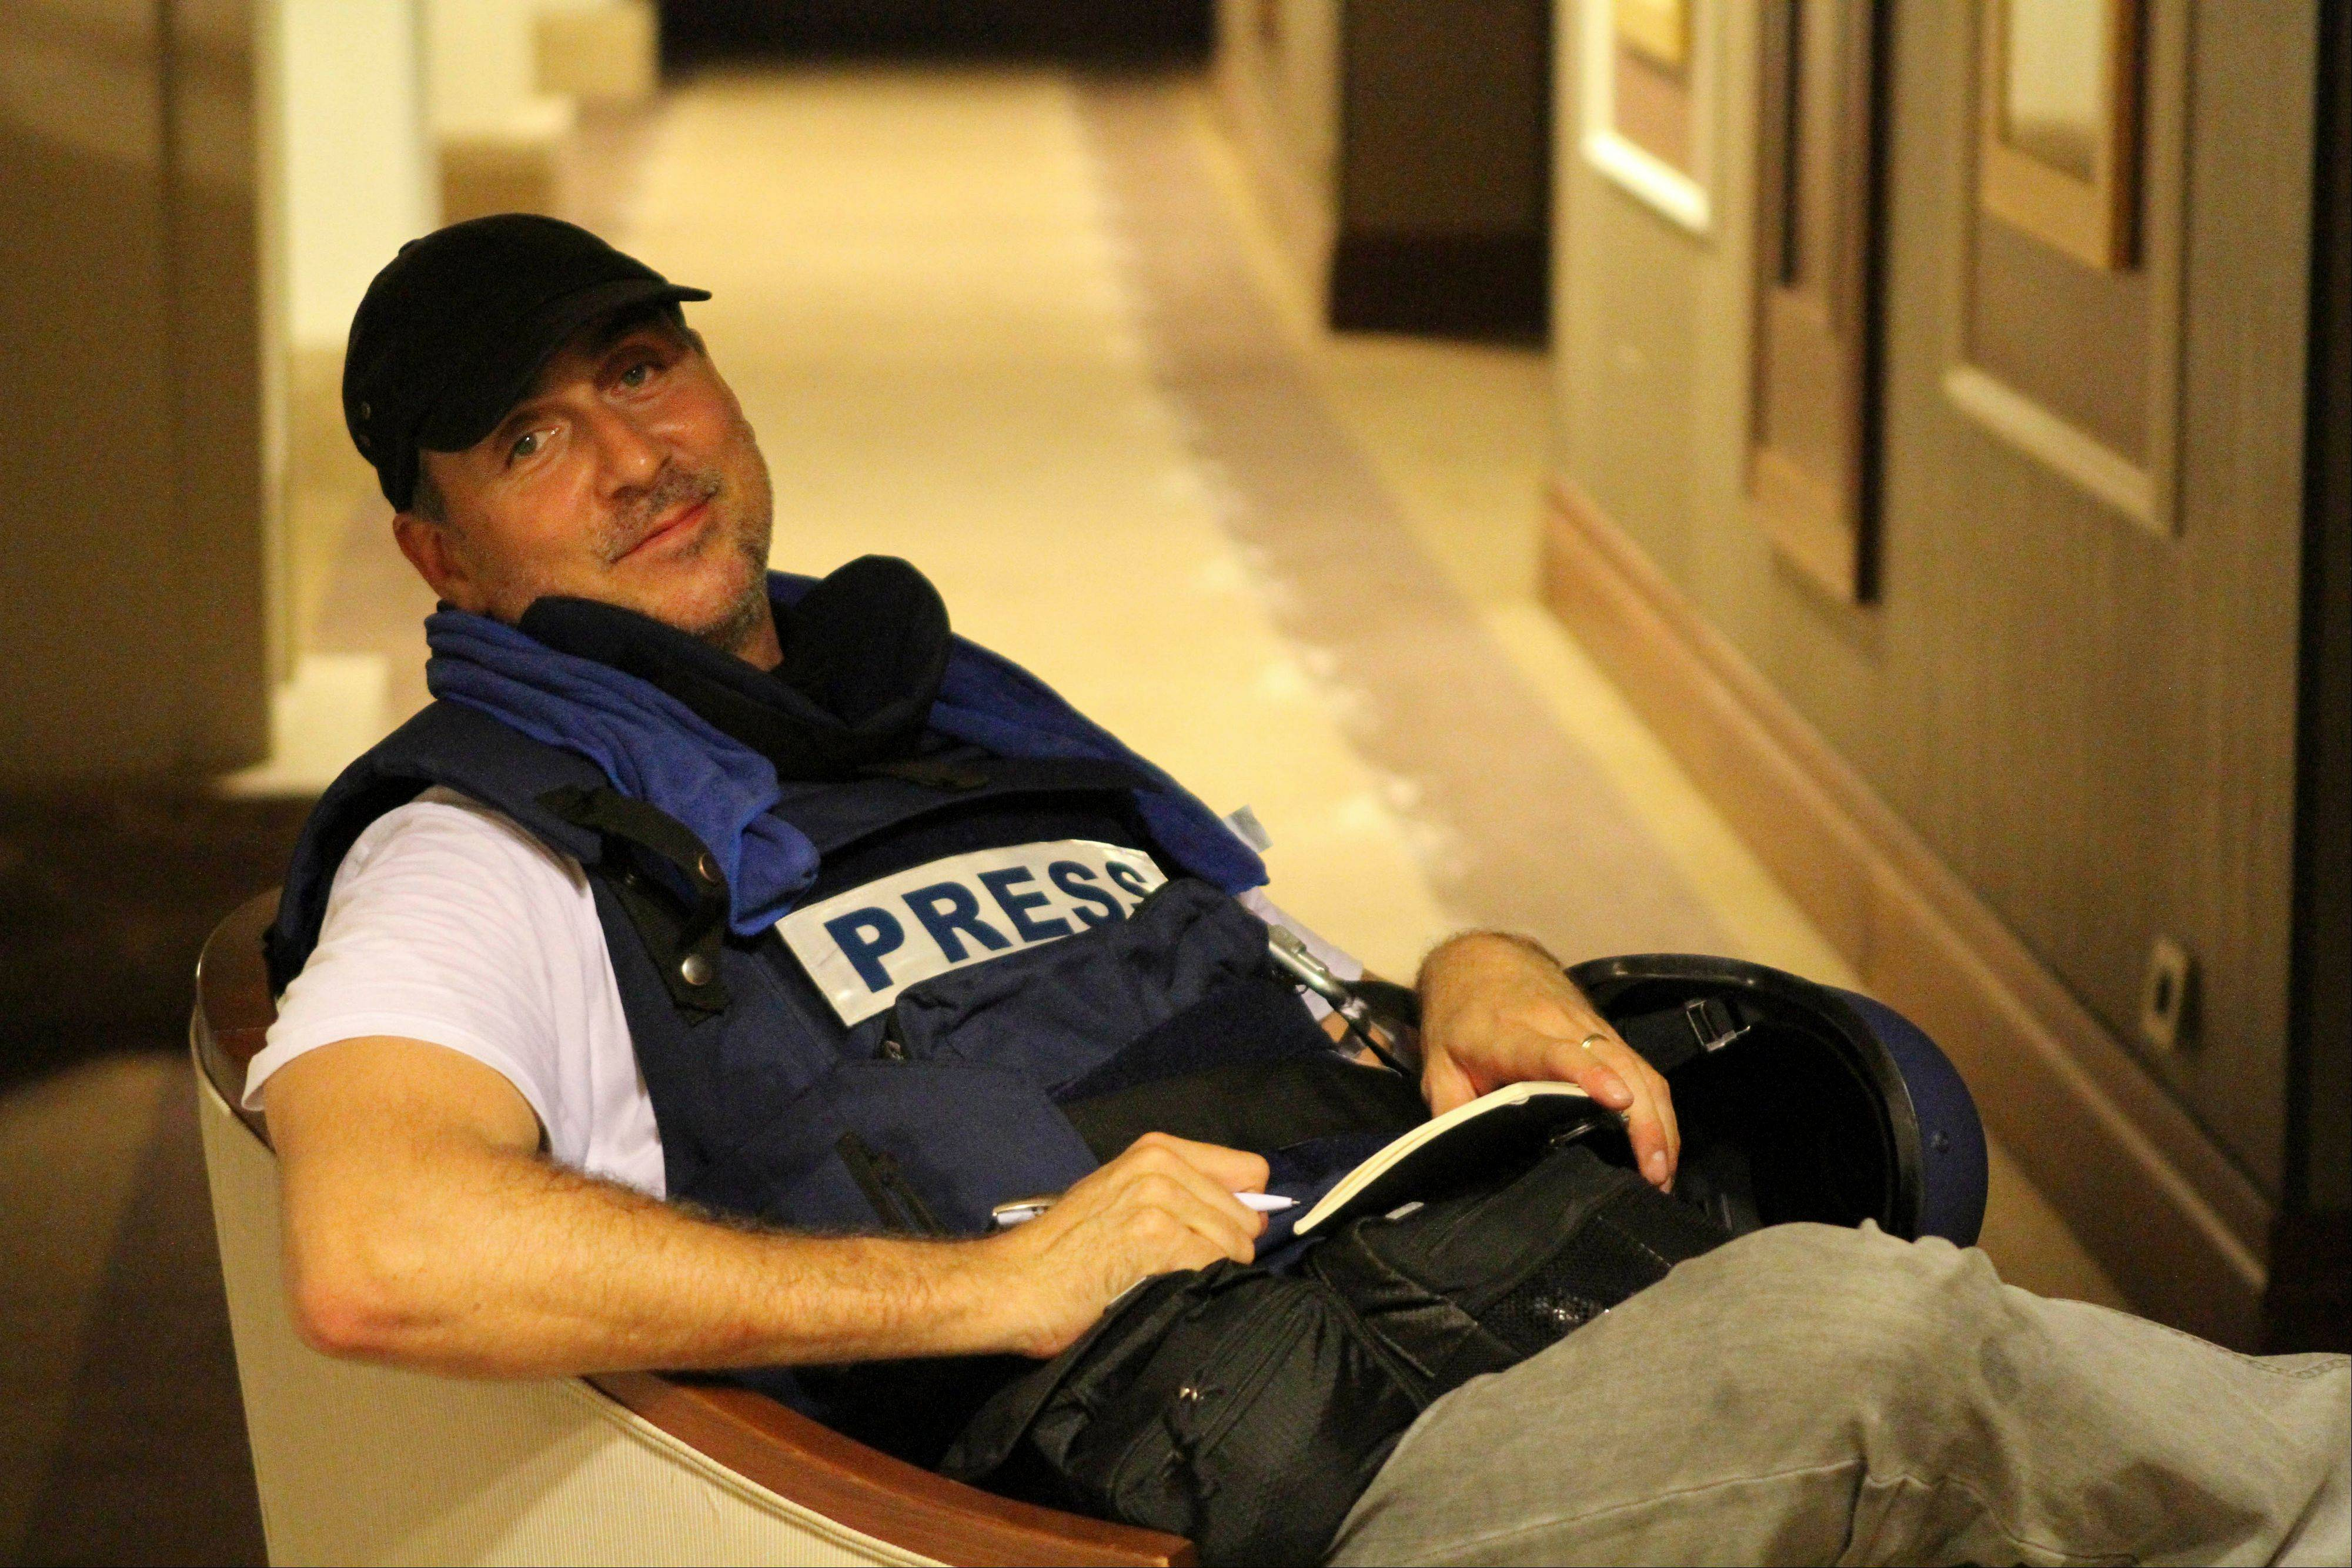 Associated Press photographer Dario Lopez-Mills poses for a photo Thursday at the Rixos hotel in Tripoli, Libya. Lopez-Mills is among dozens of journalists who were trapped for days in the luxury hotel, kept there by government enforcers.